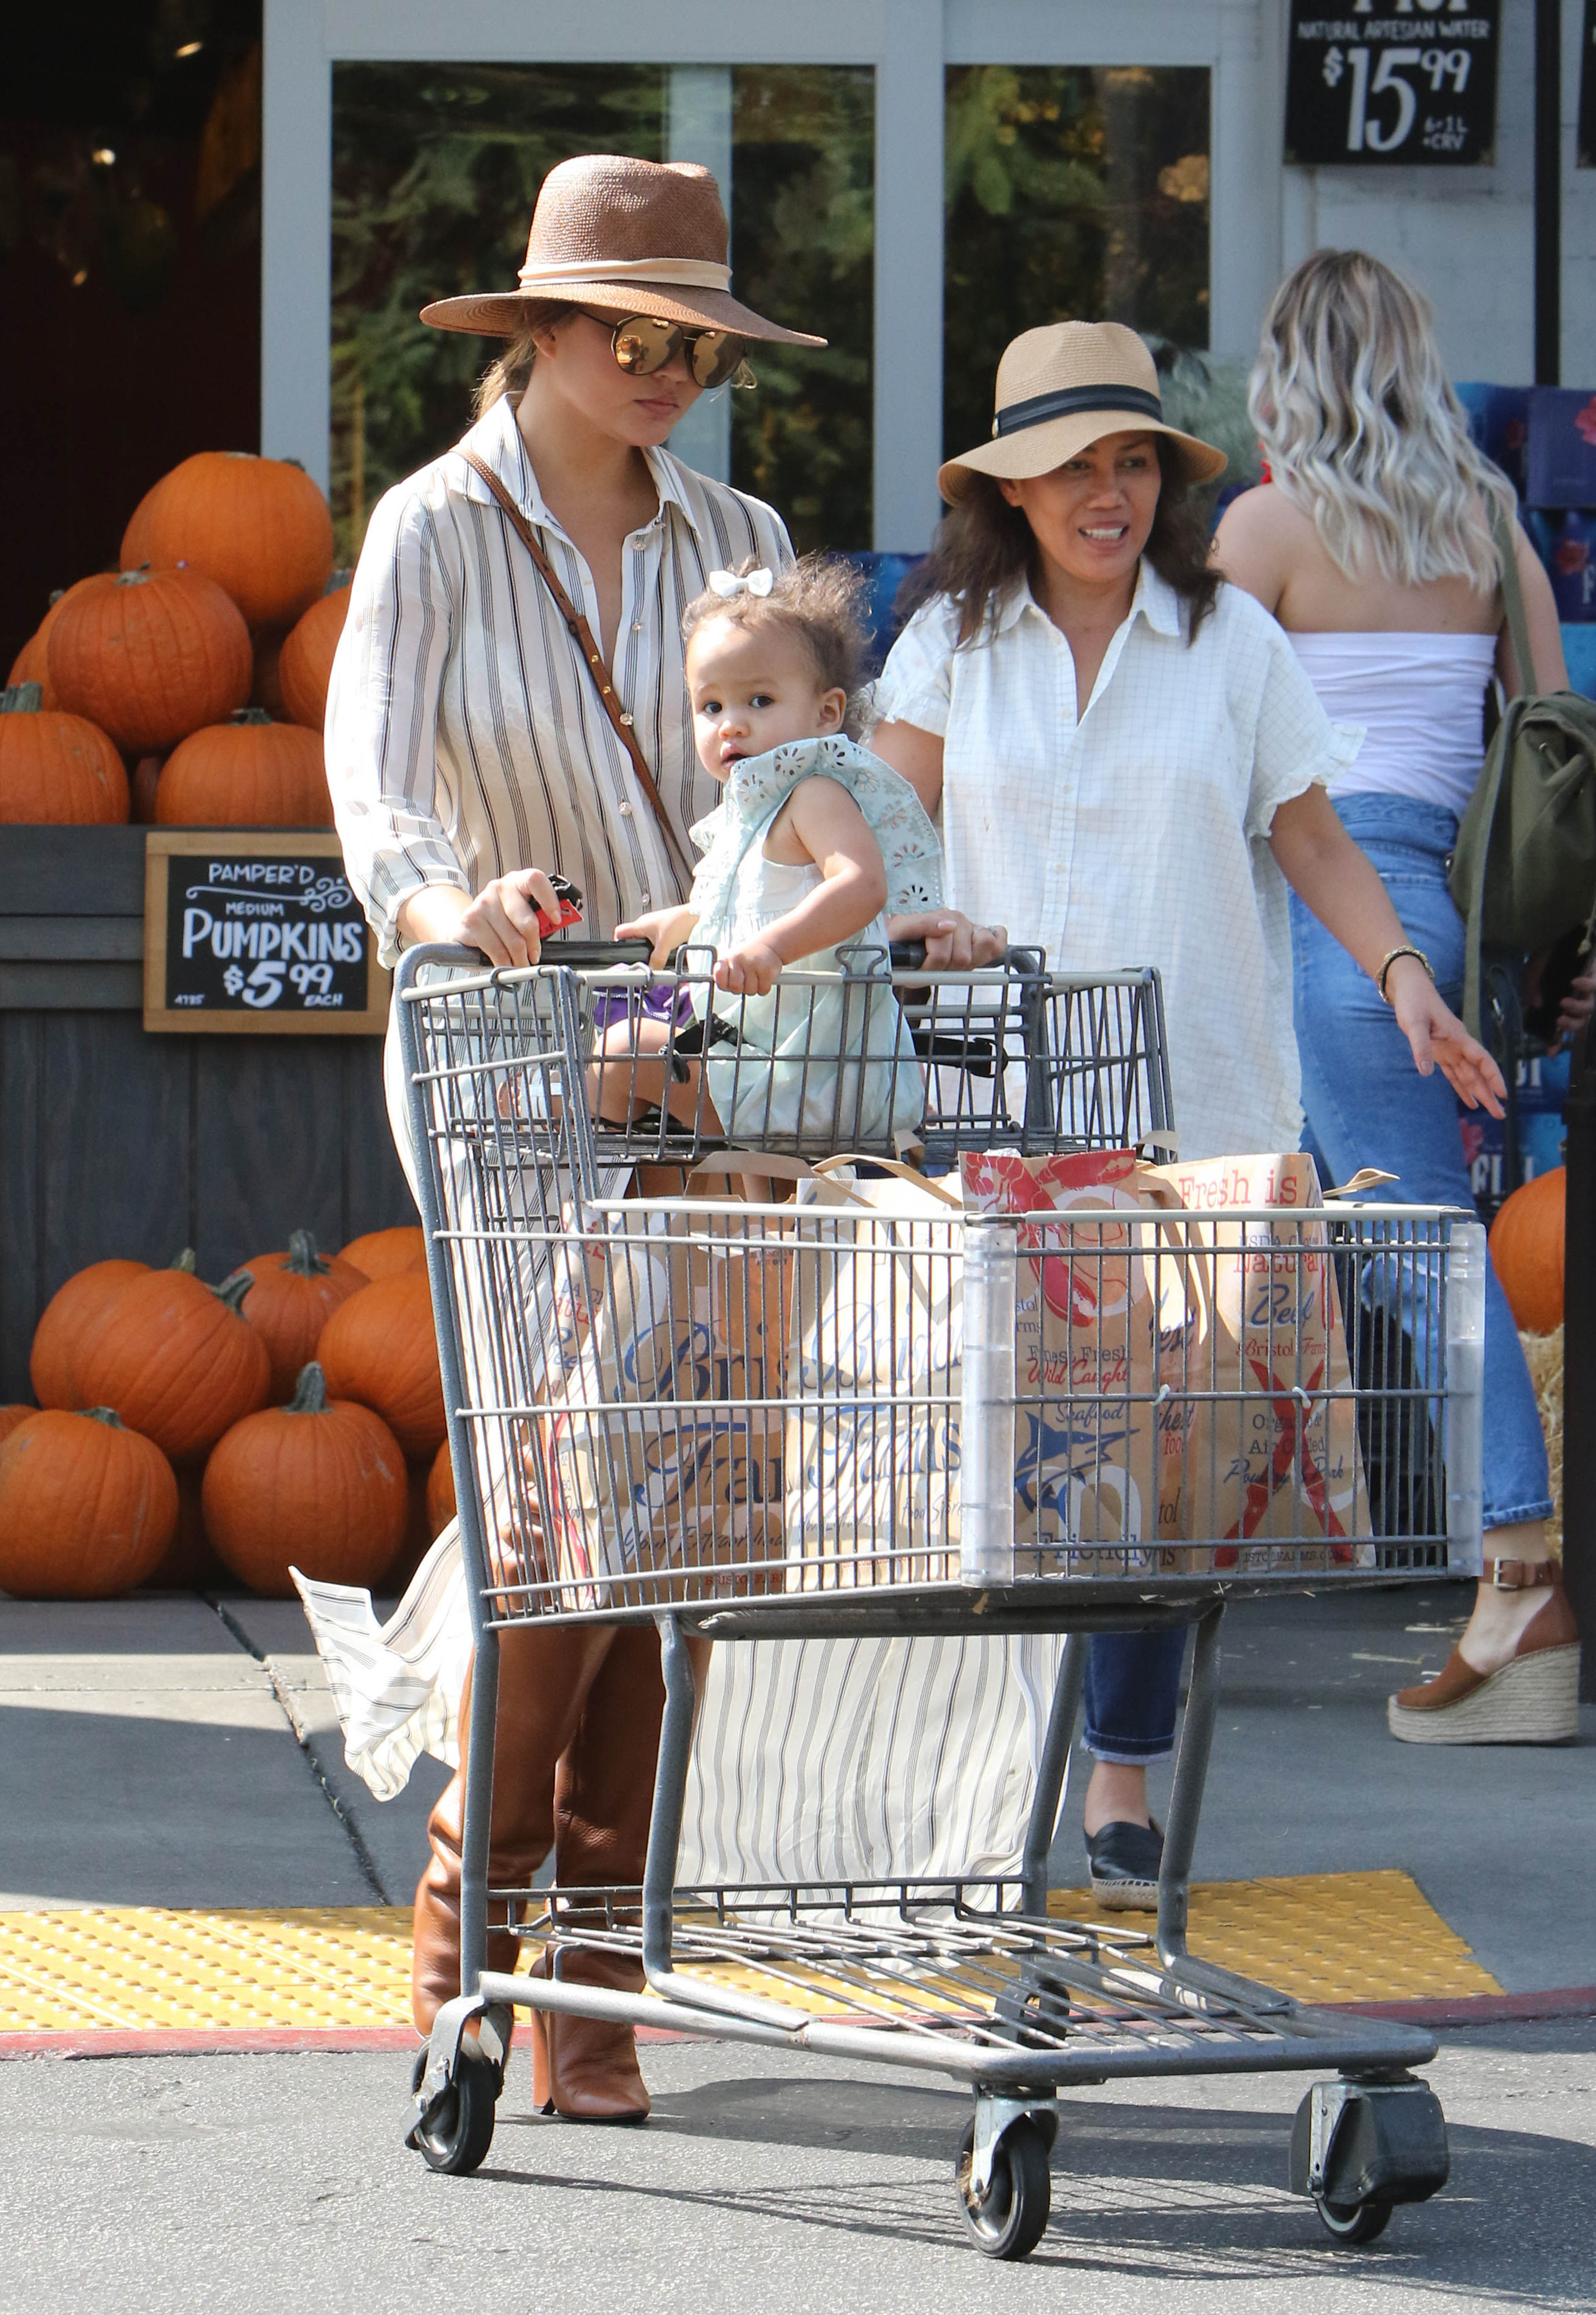 Saturday, September 30, 2017 - Chrissy Teigen takes daughter Luna grocery shopping with her mom Vilailuck at Bristol Farms.  The supermodel showed off three generations of beauty as the family stocked up on fall food.  Teigen carried the latest Chloe Nile bracelet crossbody bag (00) and wore 00 Isabel Marant Lostynn thigh-high leather boots with a flowy button-up worn robe style over her denim cut-offs.  X17online.com